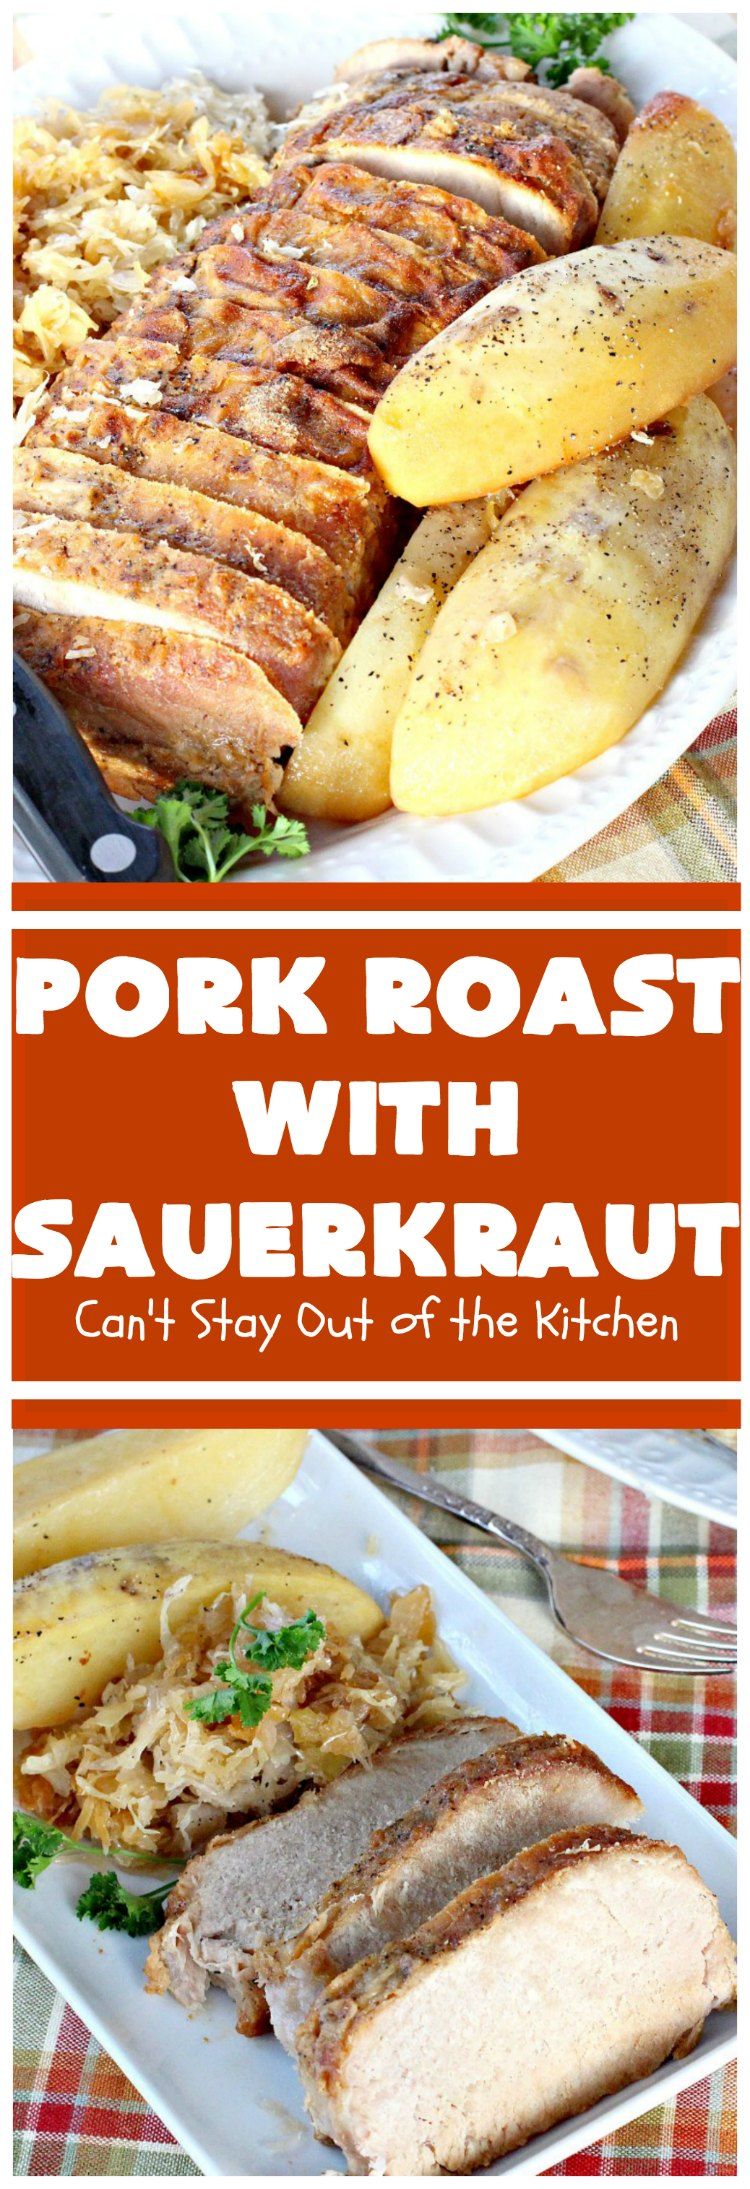 Pork Roast with Sauerkraut | Can't Stay Out of the Kitchen